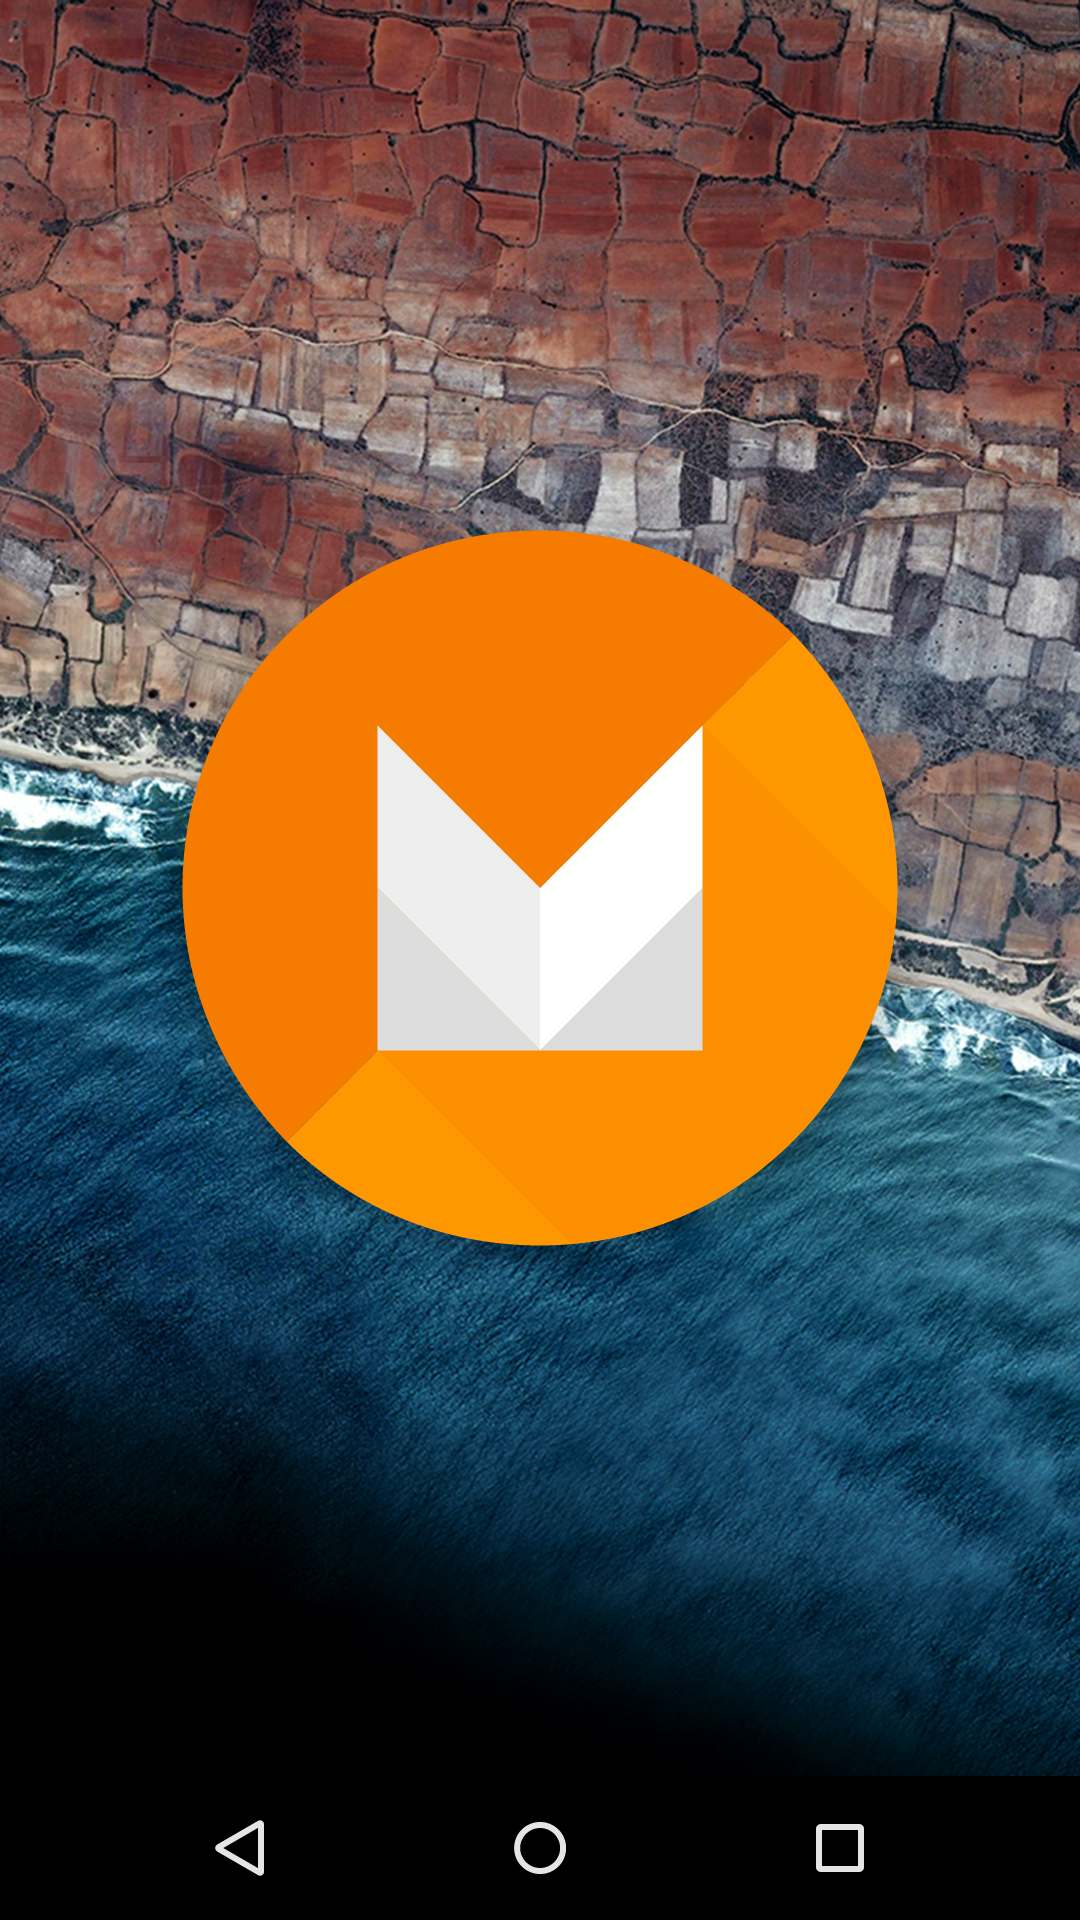 Android 6.0 Marshmallow – 10 new features